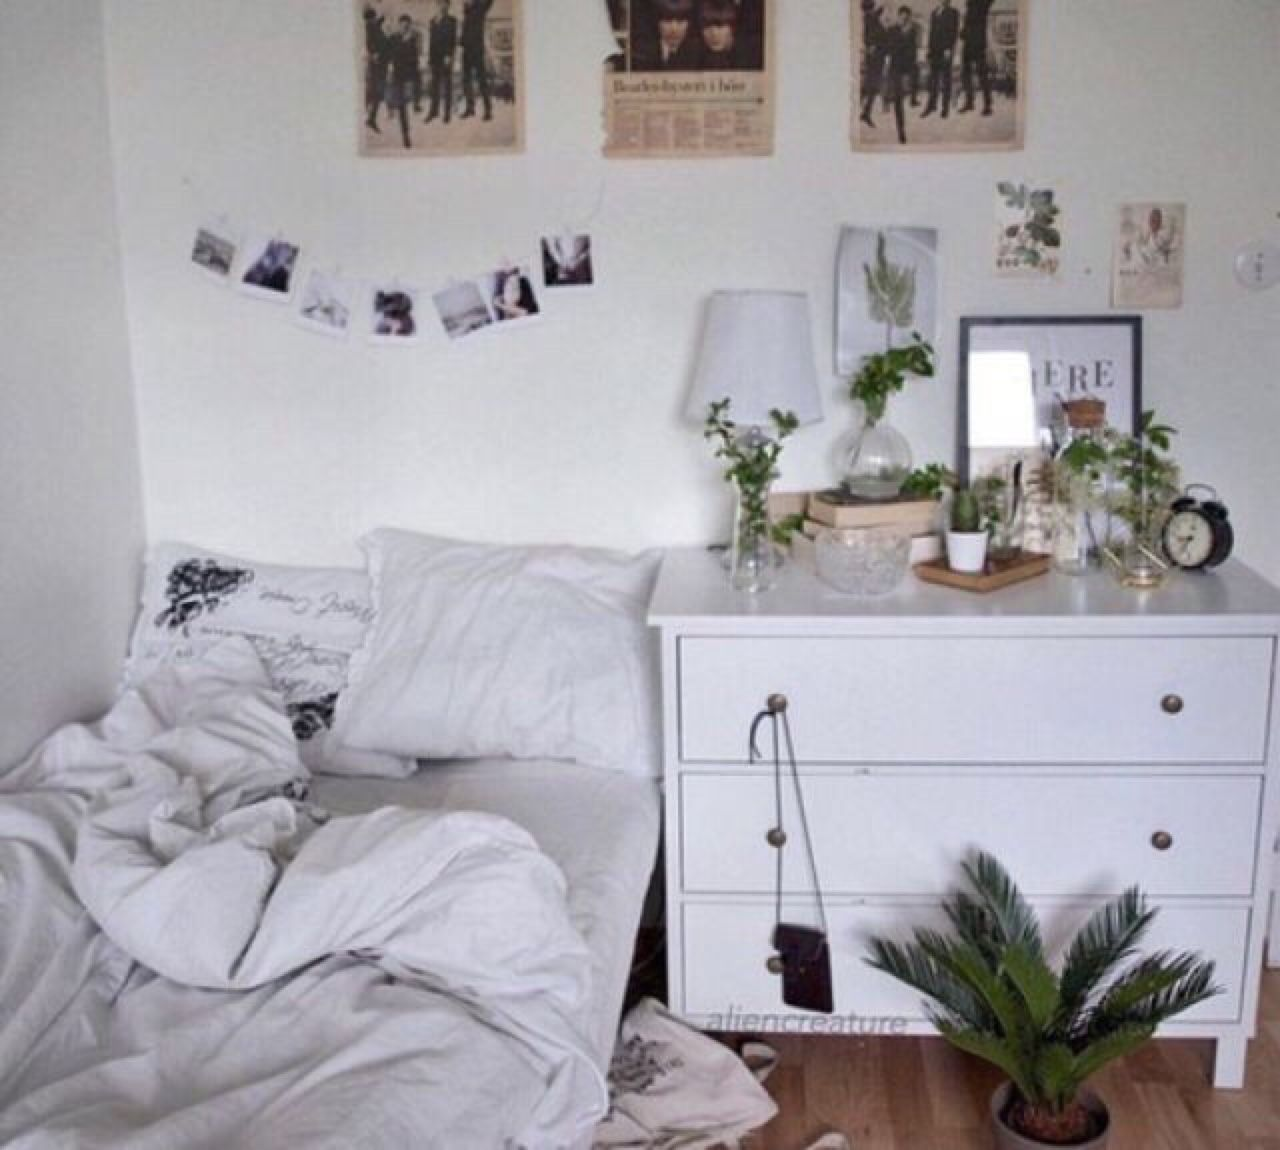 White bedroom designs tumblr - Aesthetic Tumblr Grunge Room Google Search